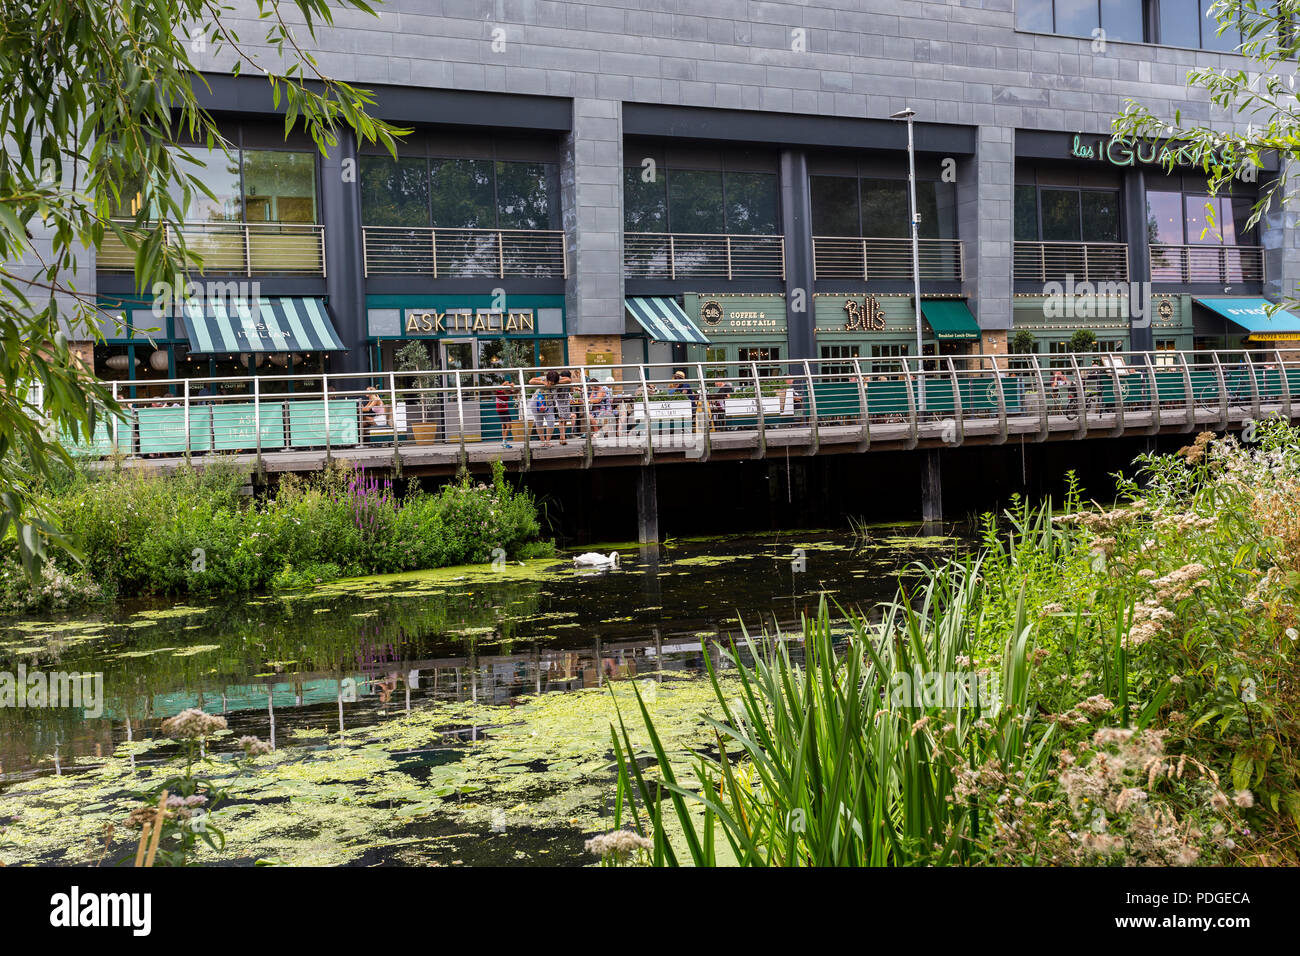 Chelmsford,Essex,England,UK - Stock Image